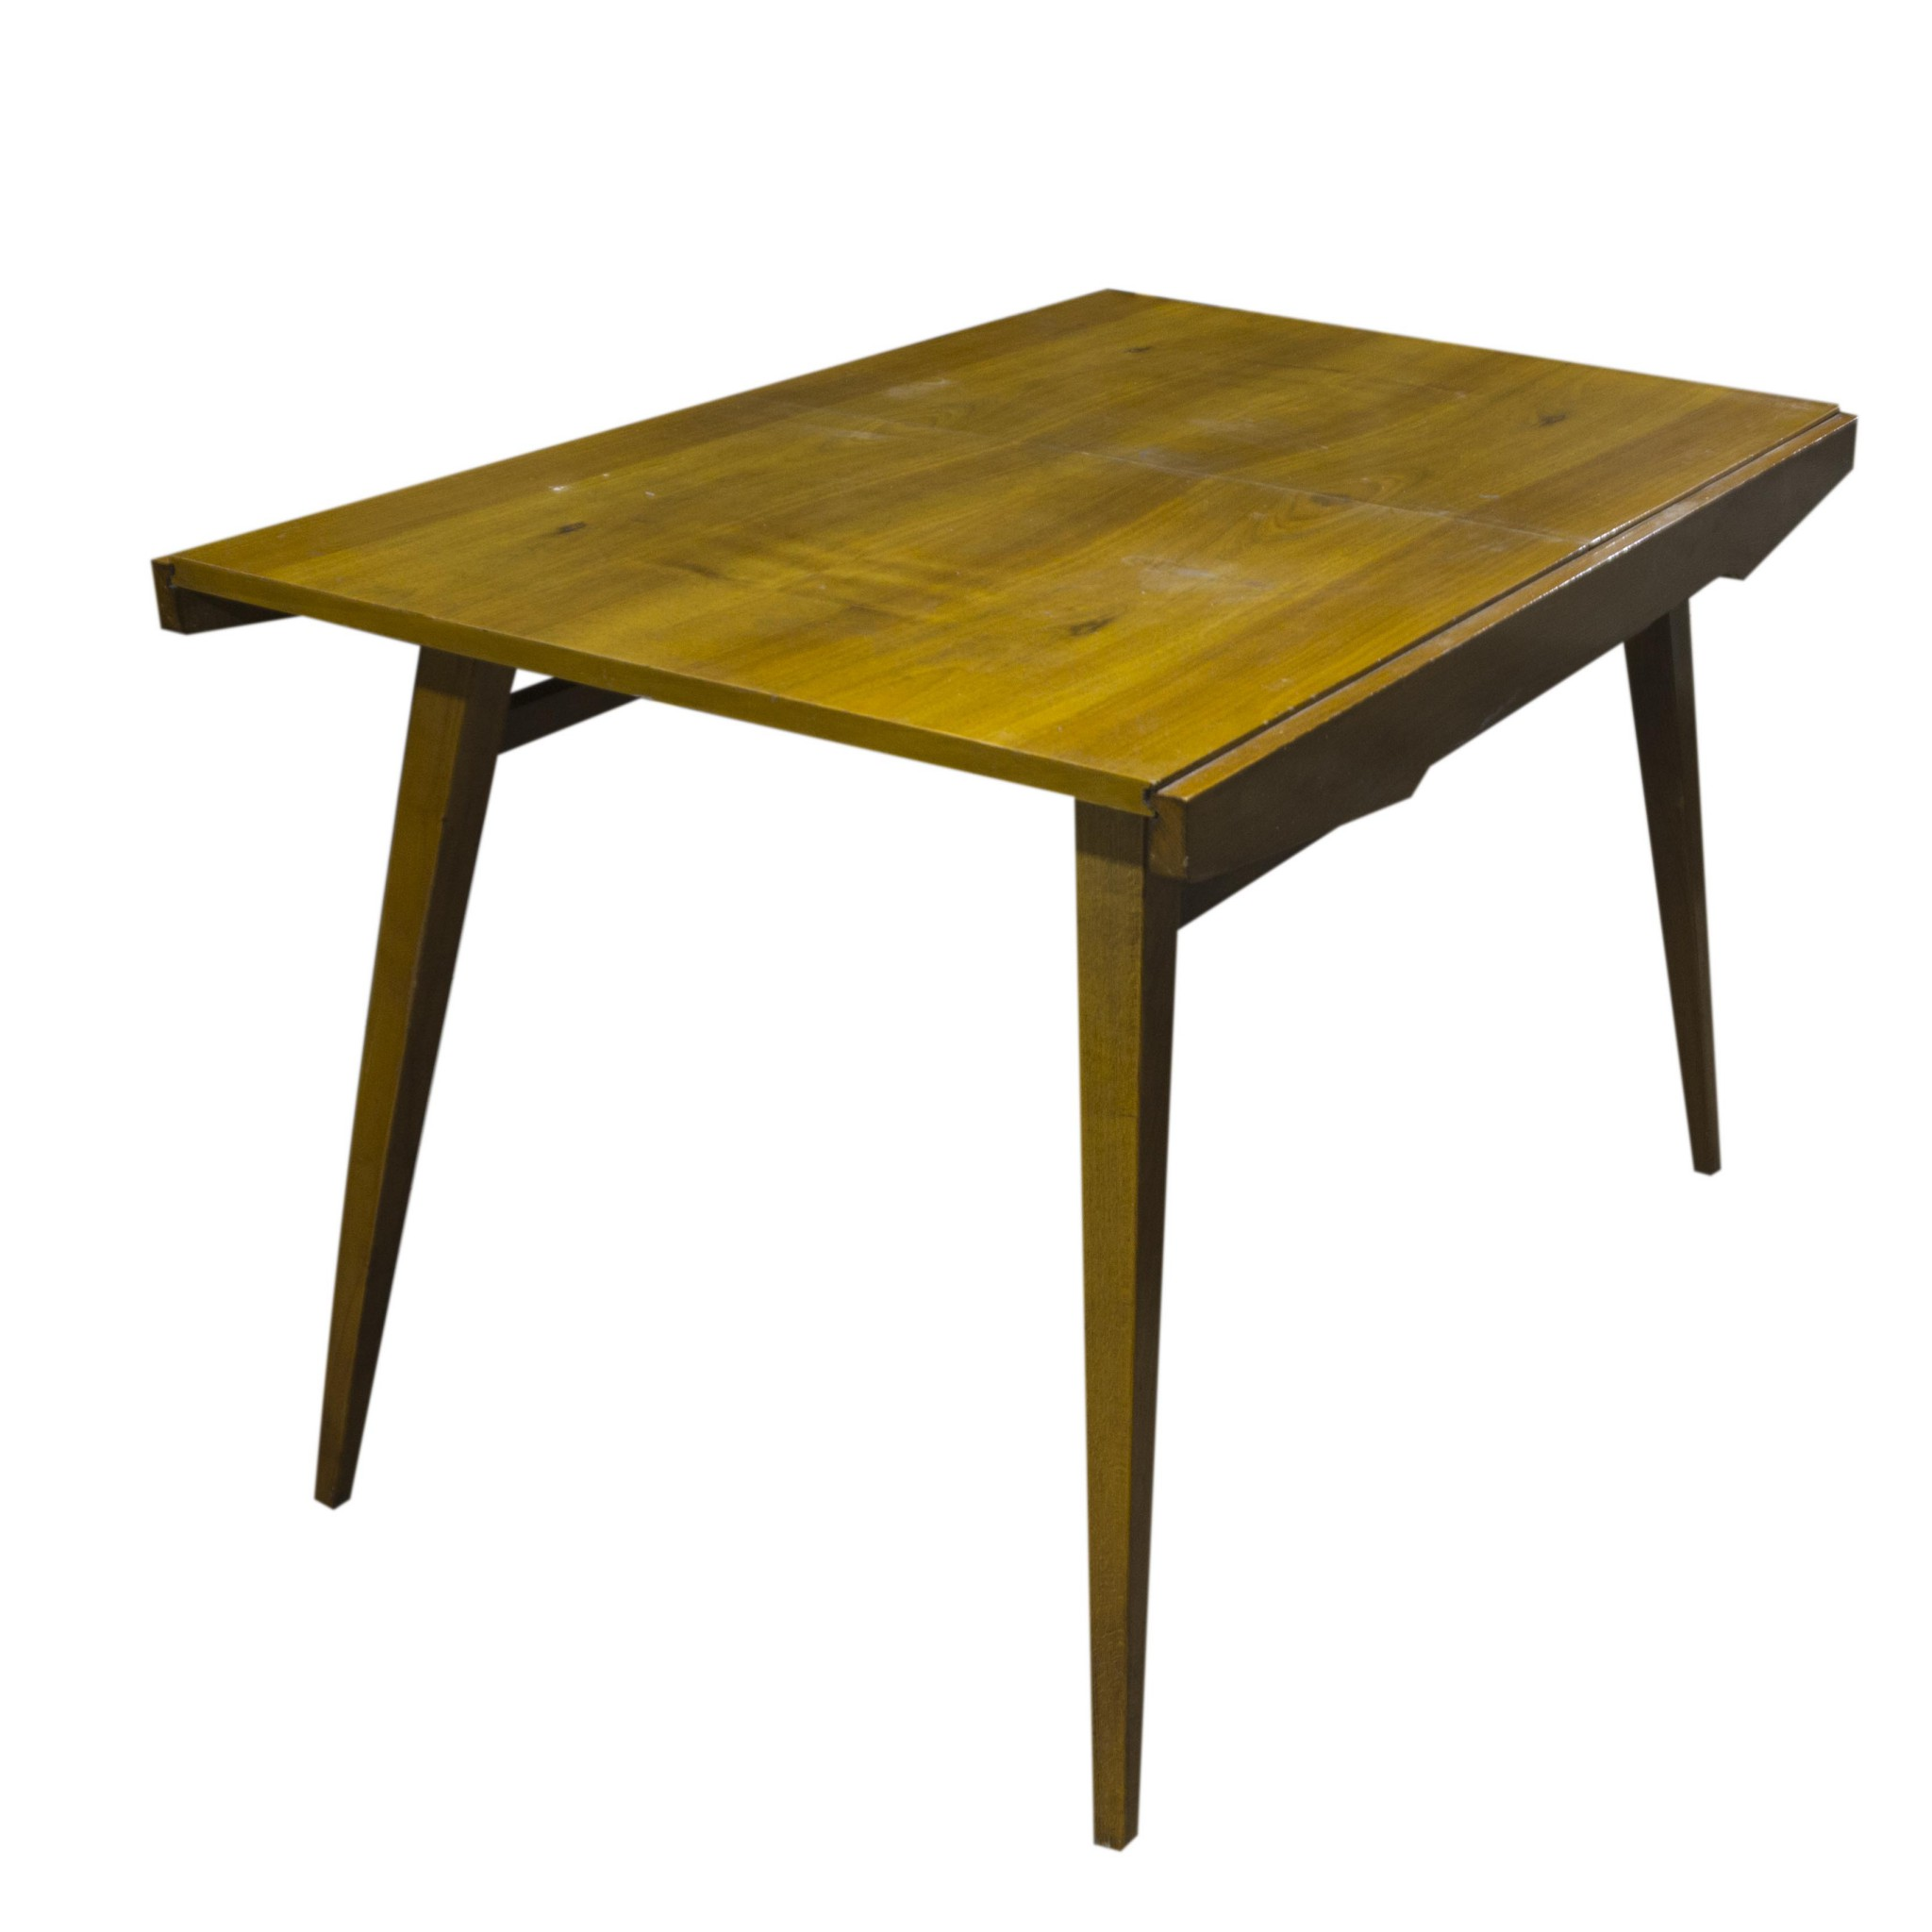 Vintage expandable dining table 1960180s Middle Europe  : DSC07857 from your20th.com size 2048 x 2048 jpeg 207kB